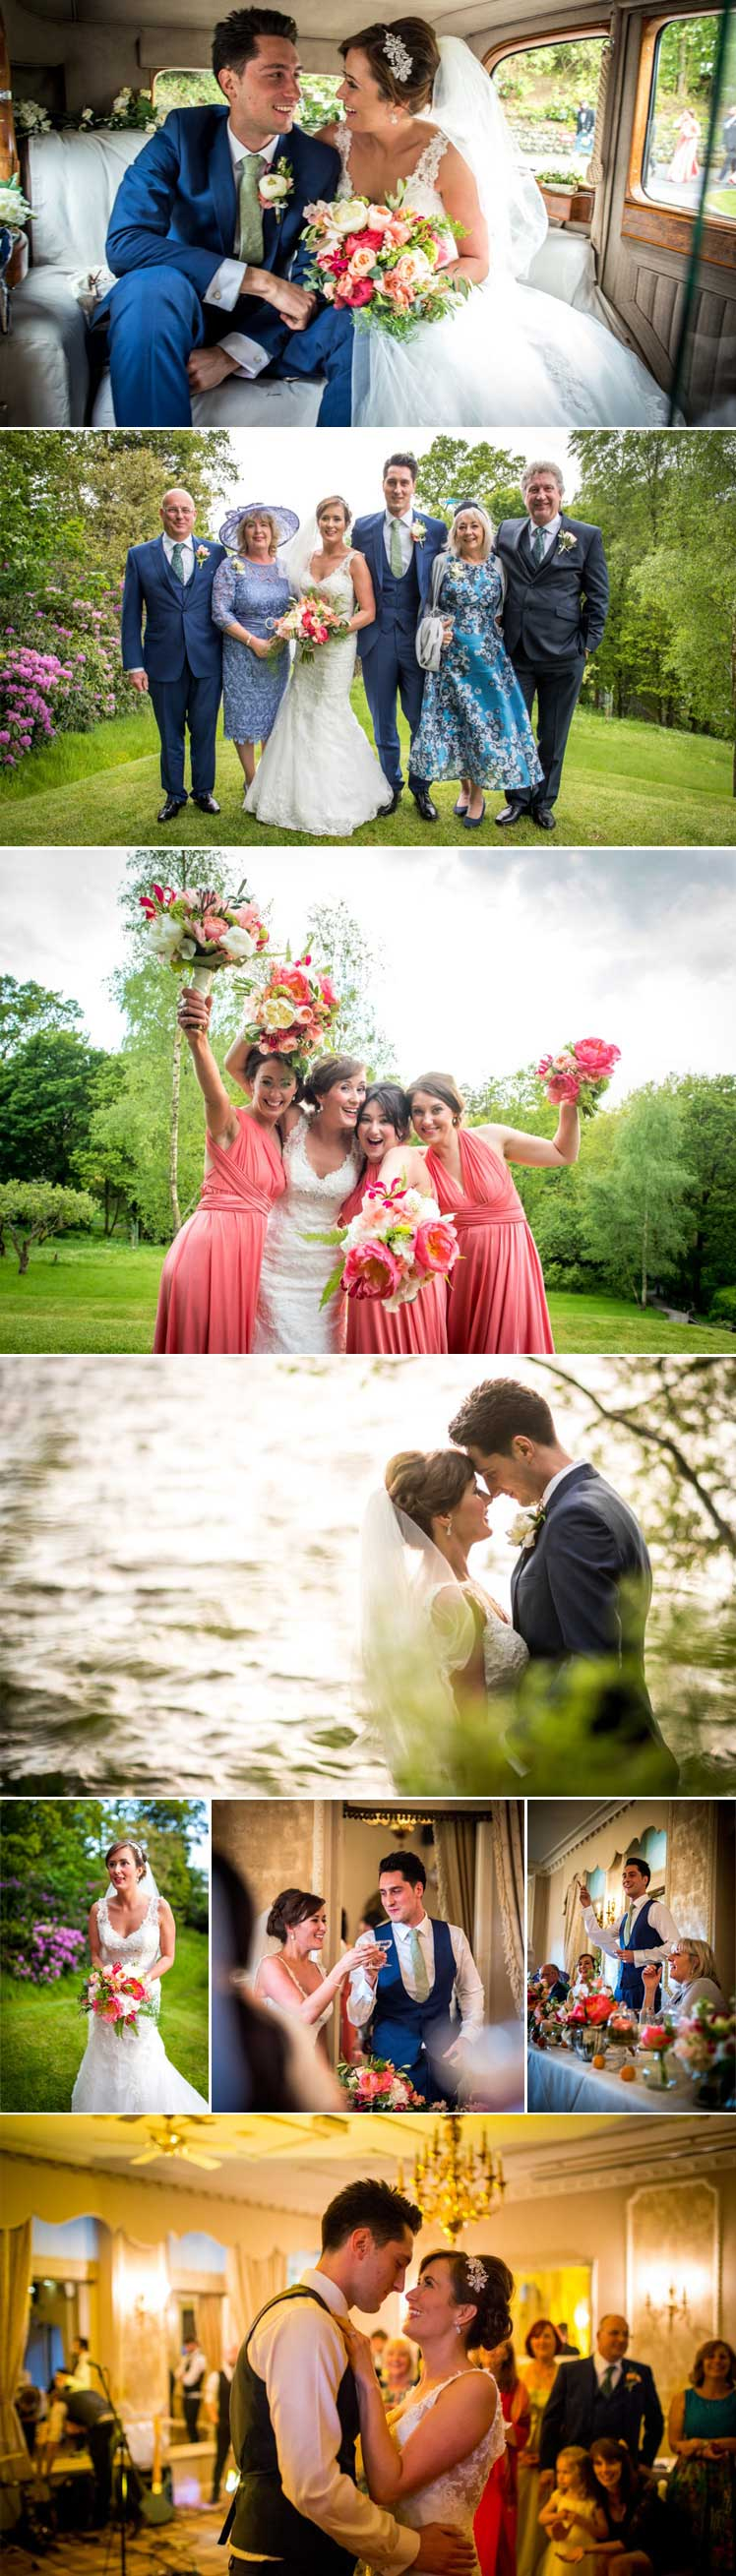 James Tracey's beautiful images of Julia and Alex's wedding day